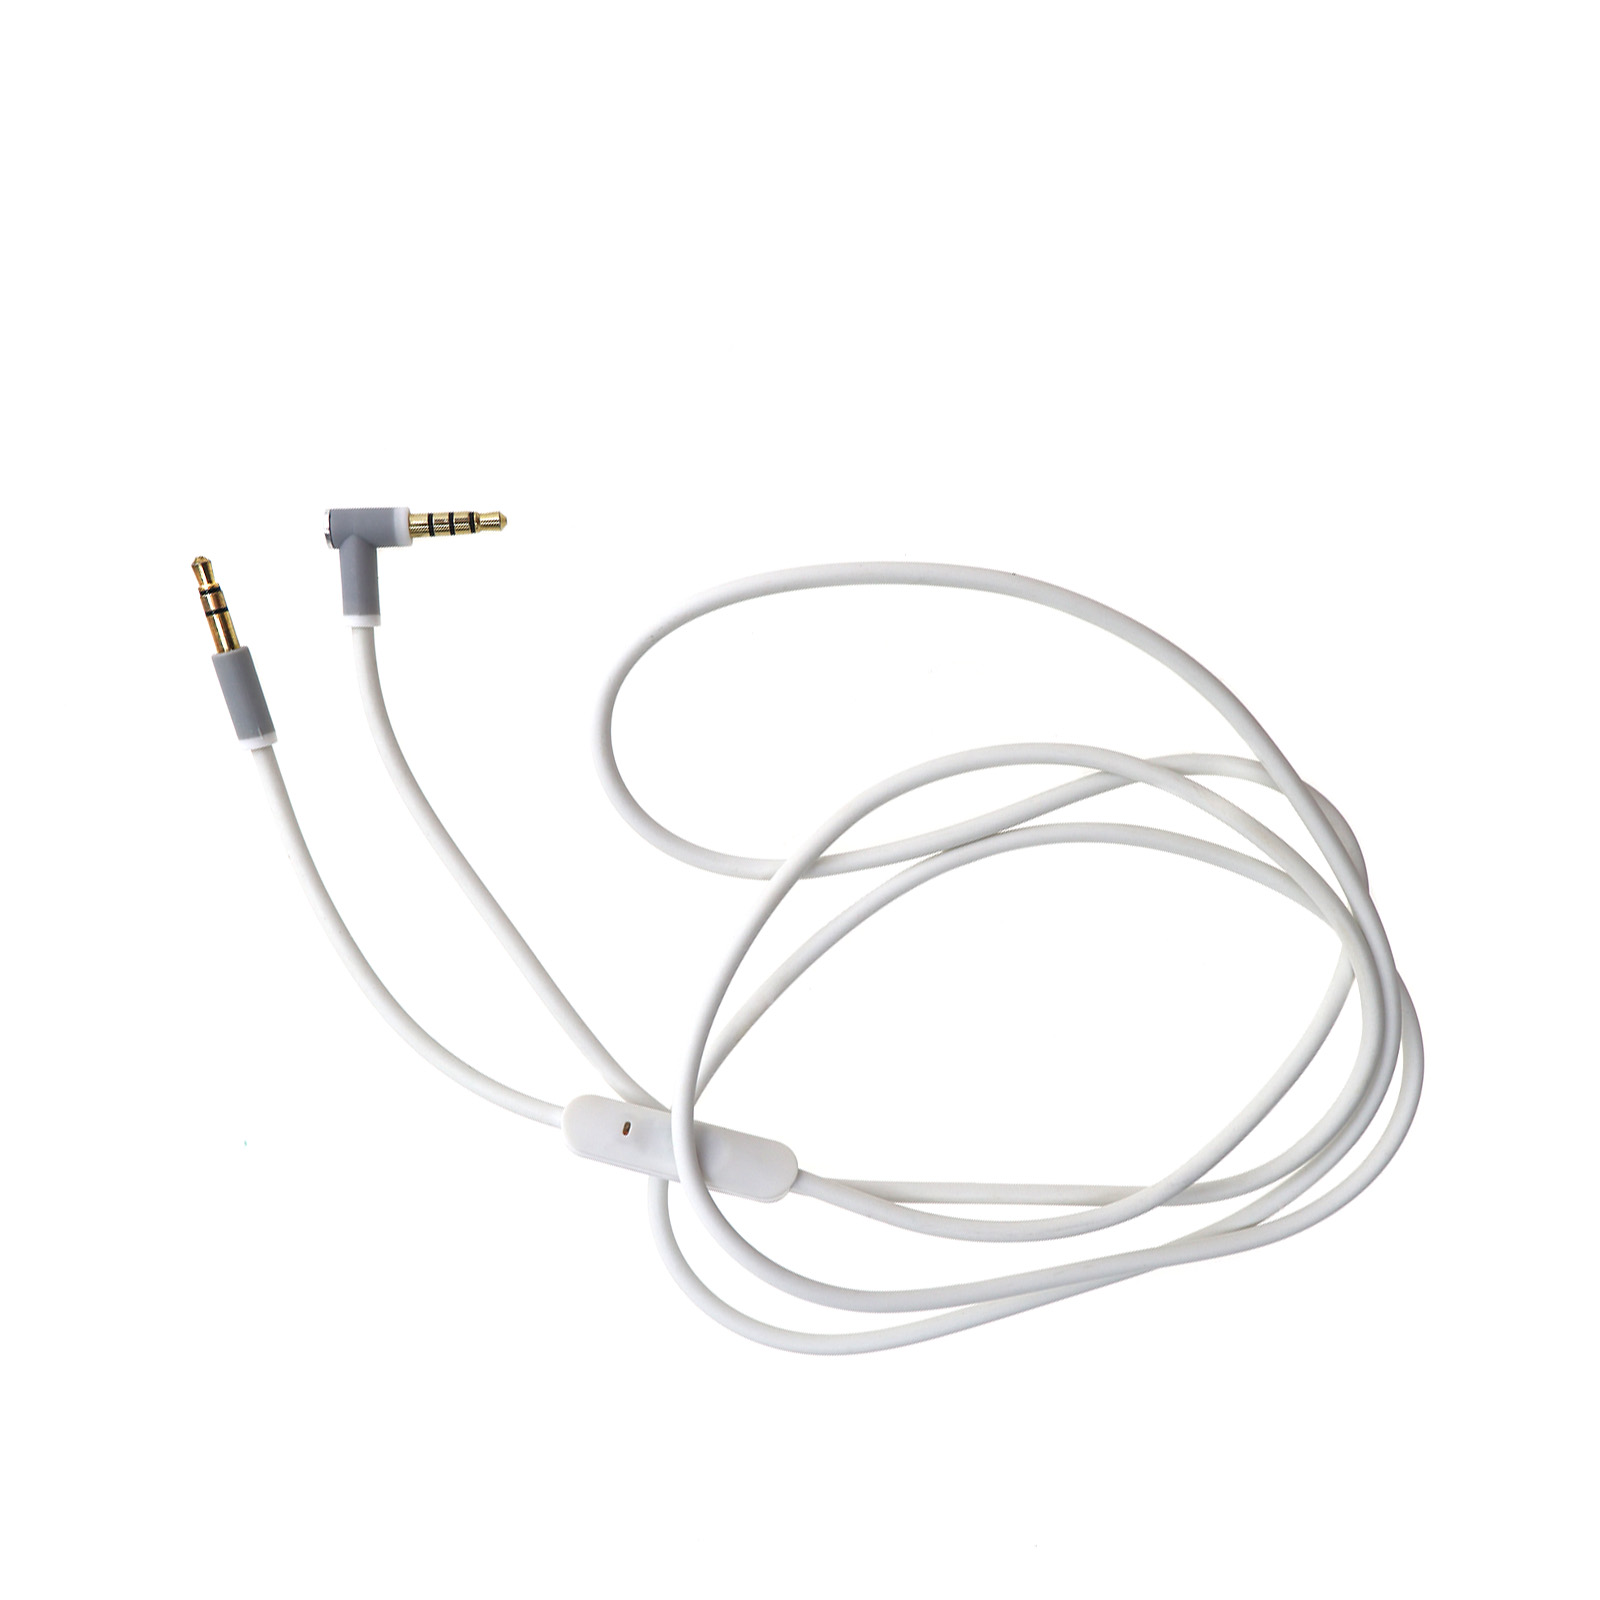 Replacement Audio Headphones Mic Cable 3 5mm Aux Cord Jack